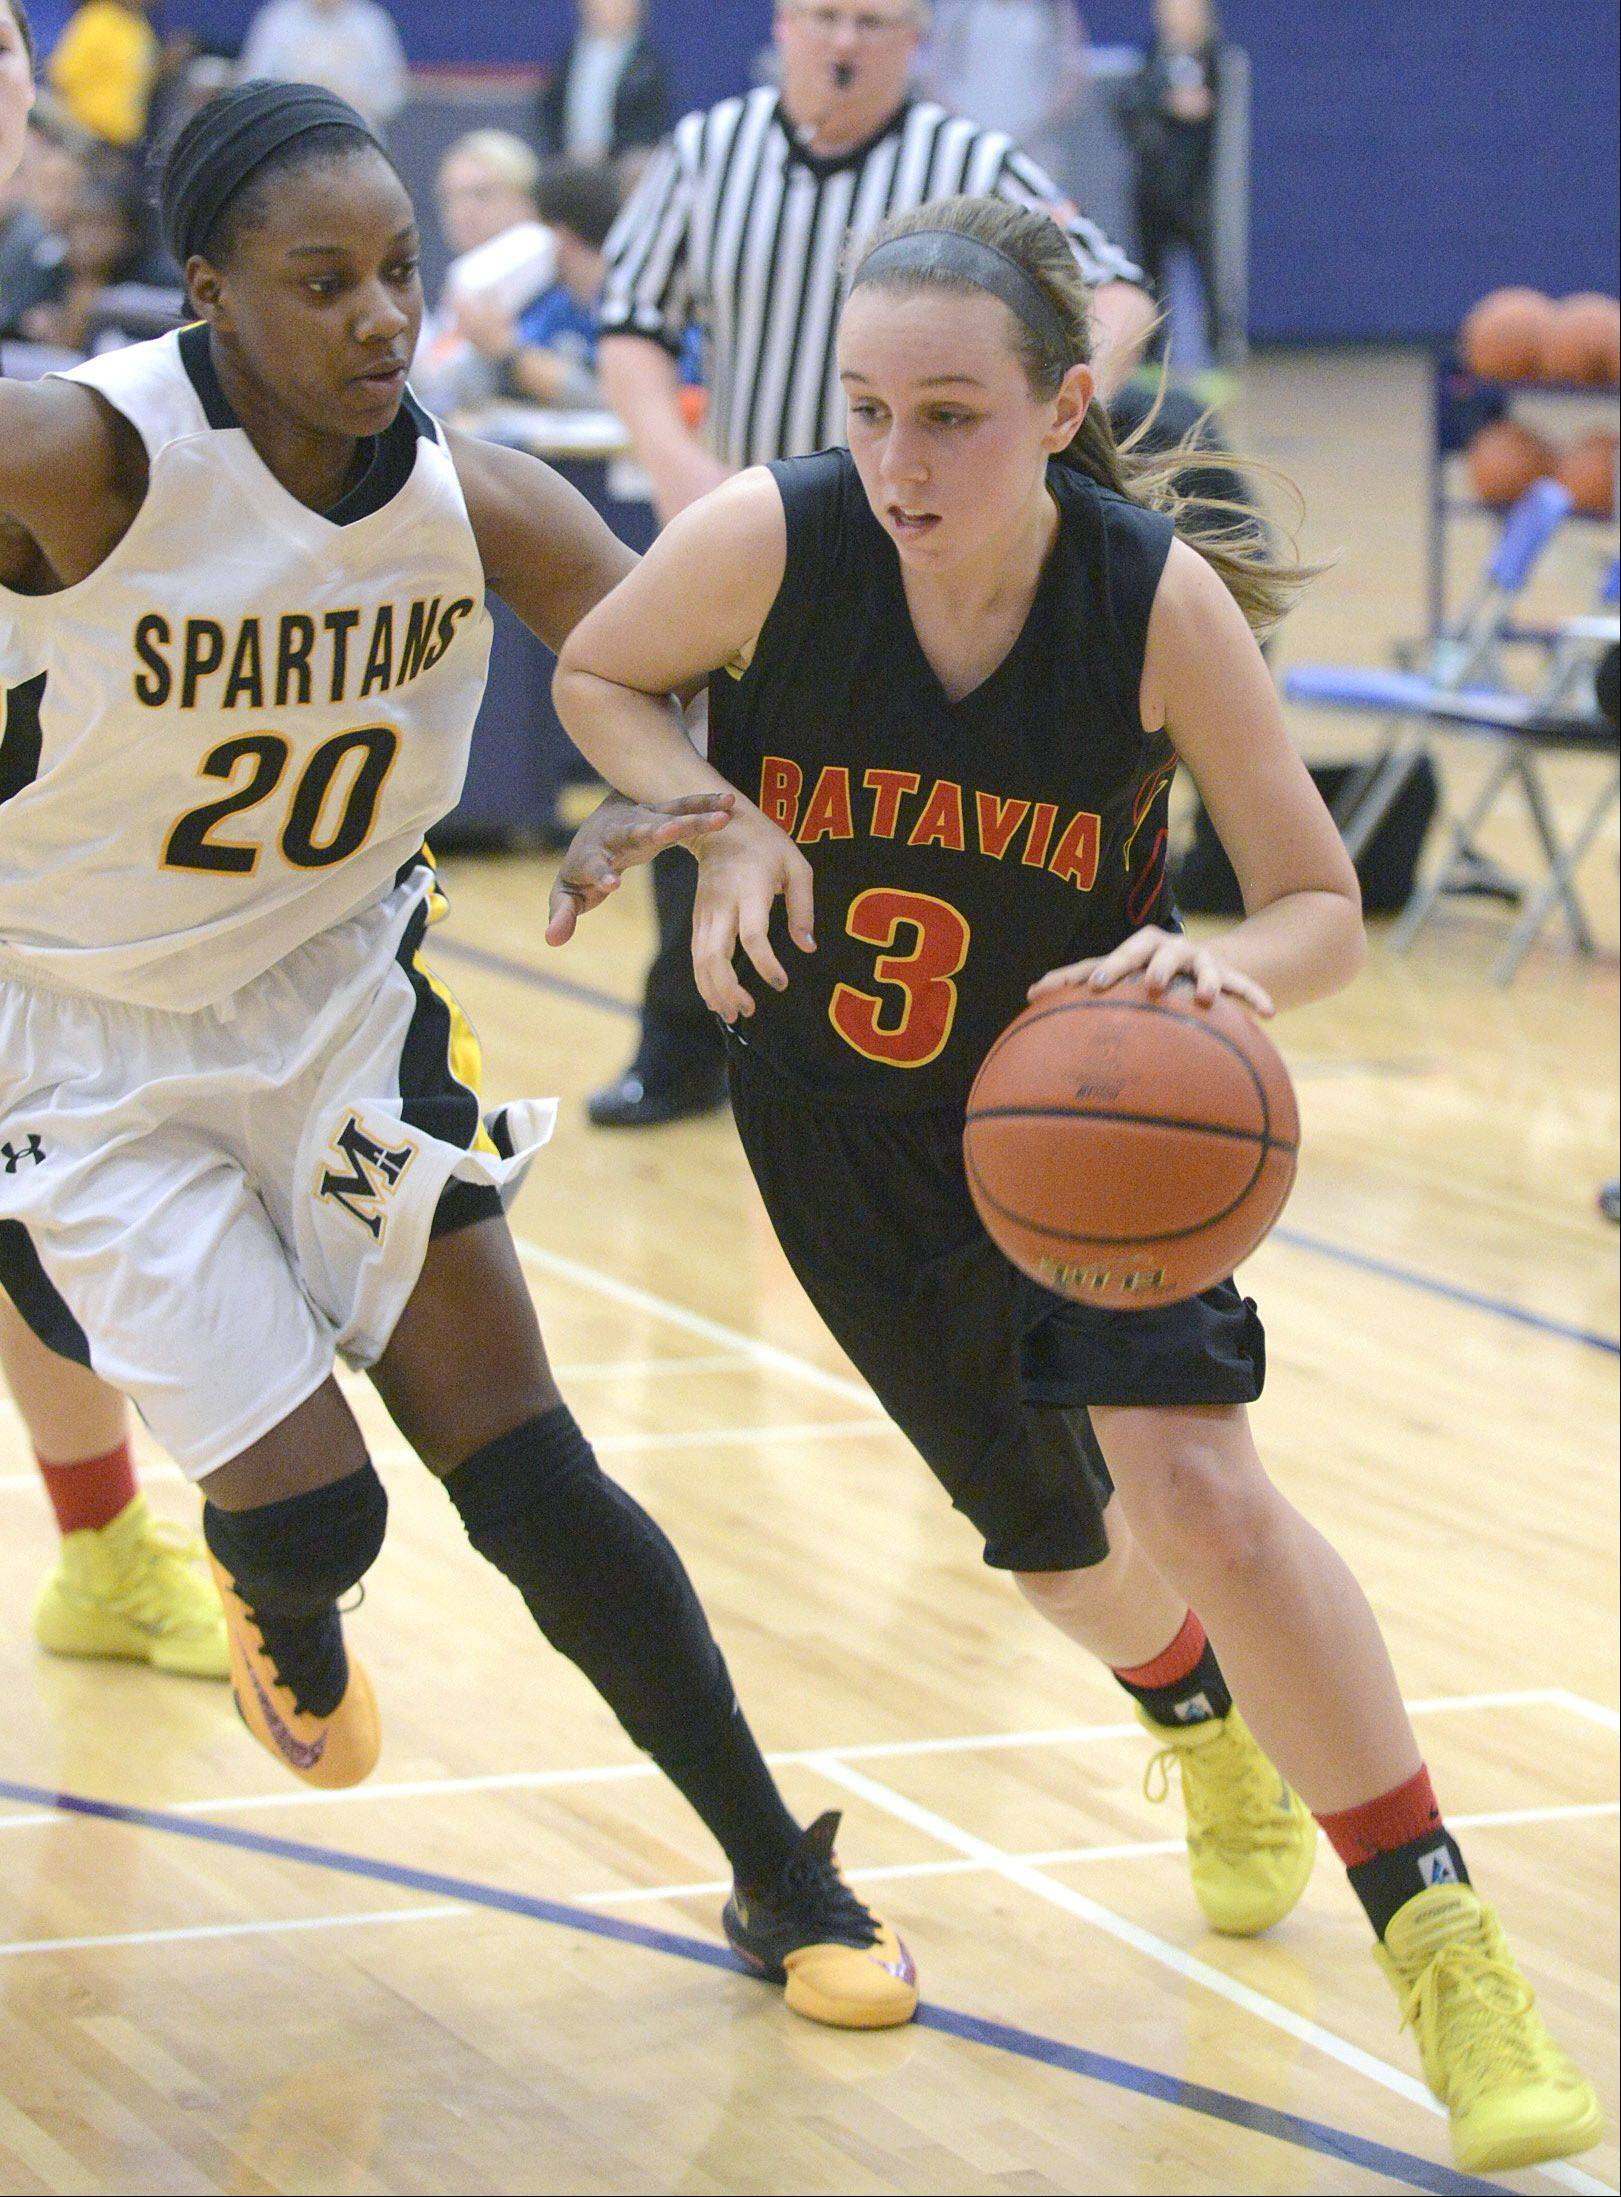 Batavia's Bethany Orman drives the ball to the hoop around Marian Catholic's Dajhae Mullins in the third quarter on Wednesday, December 18.